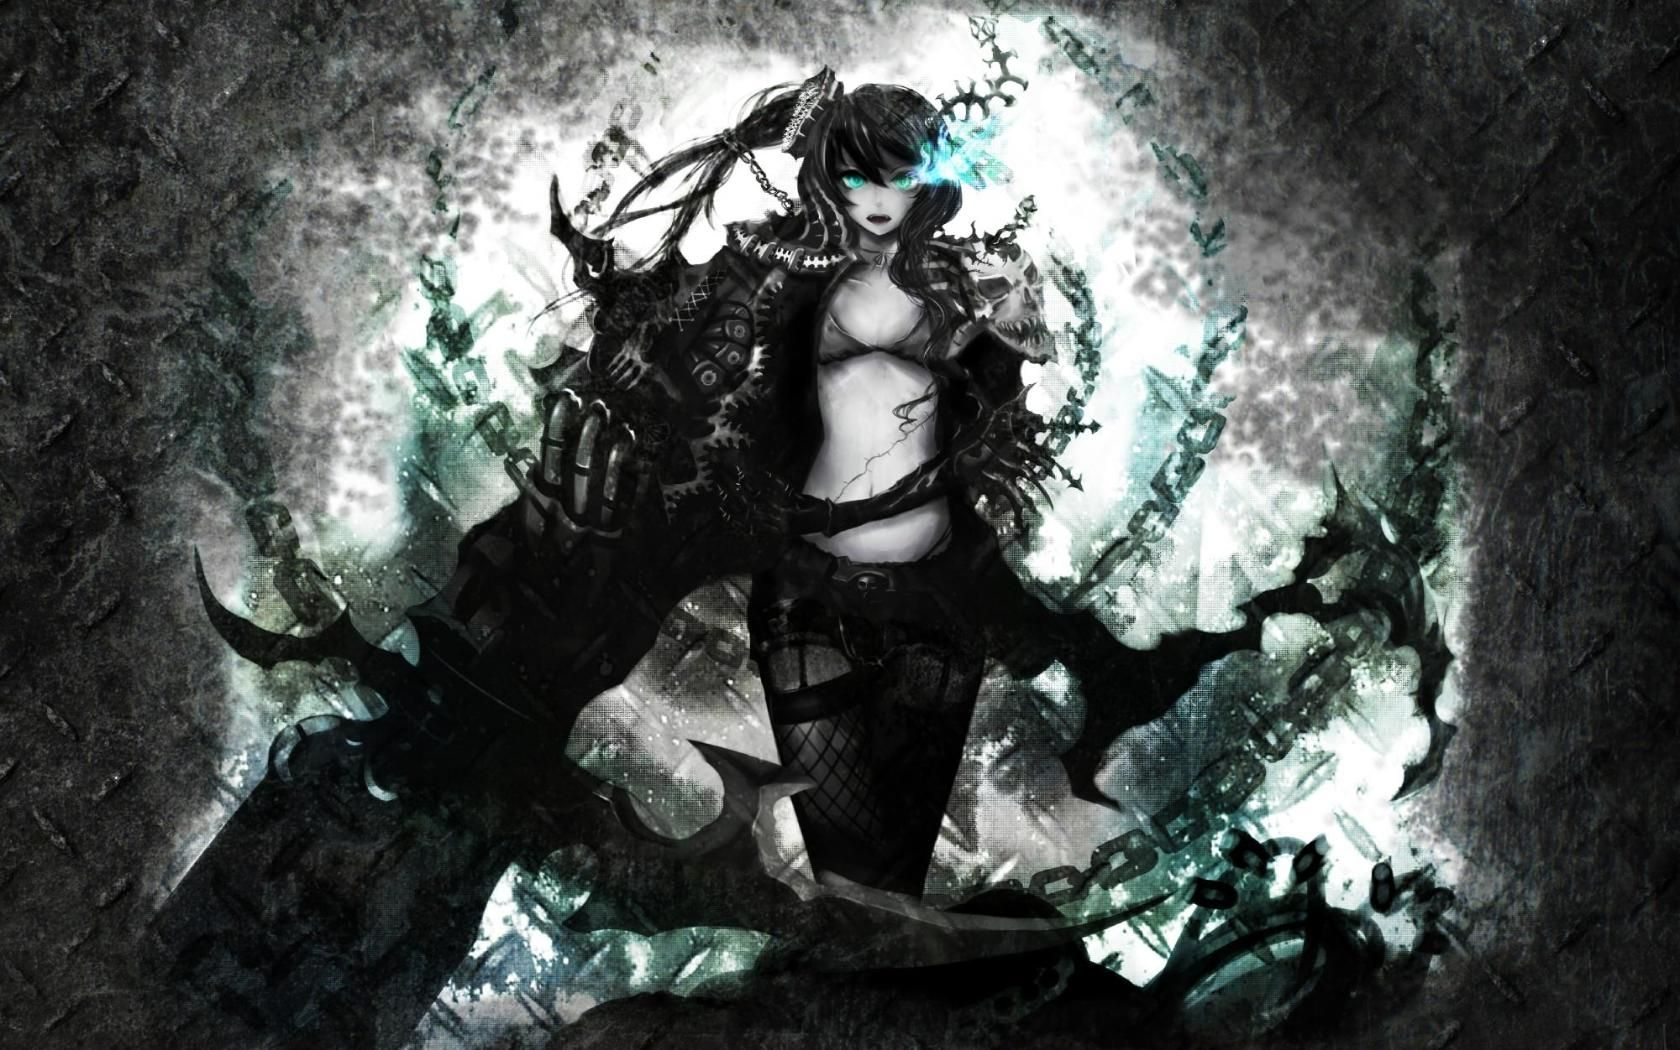 Black Rock Shooter EPIC wallpaper